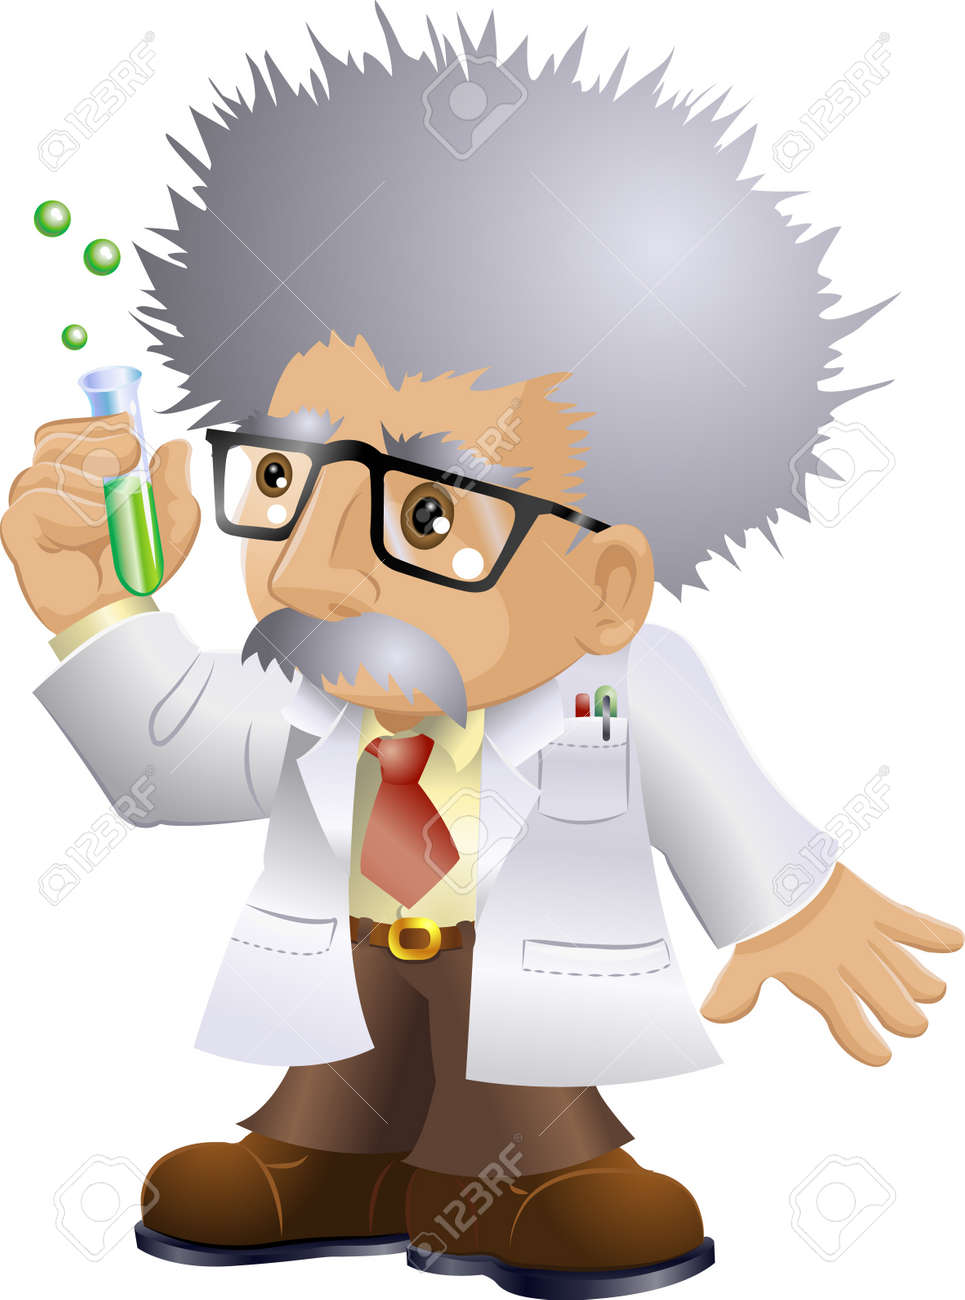 Illustration of a kooky professor or scientist holding a test-tube Stock Photo - 2397591